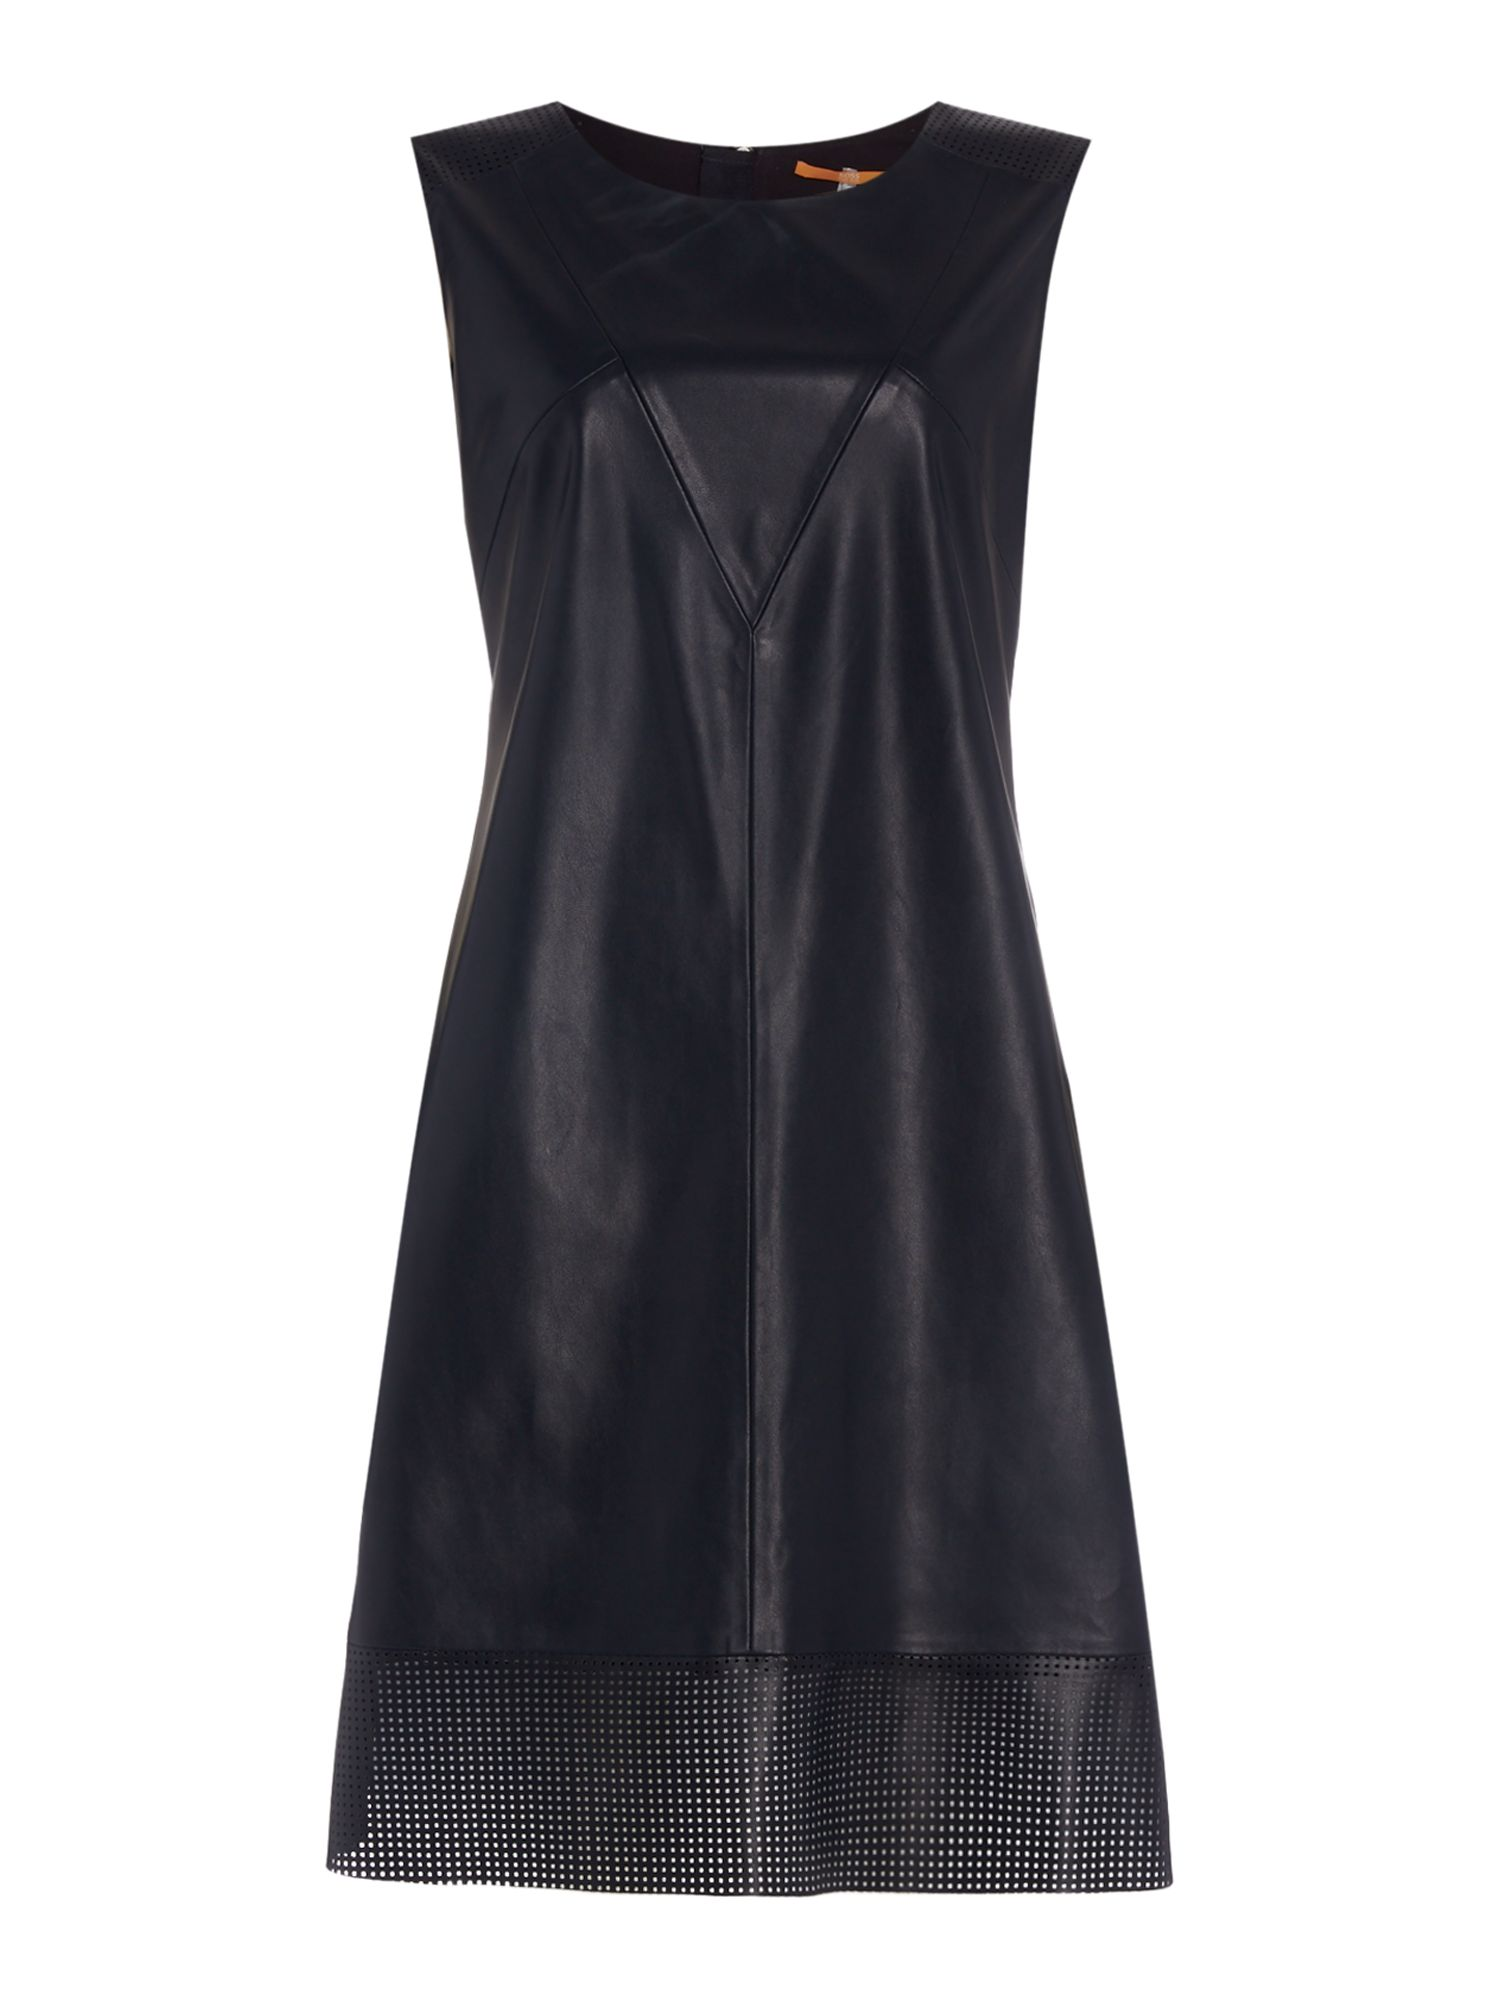 Hugo Boss Aswedy Crew Neck Shift Dress in Dark Blue, Dark Blue